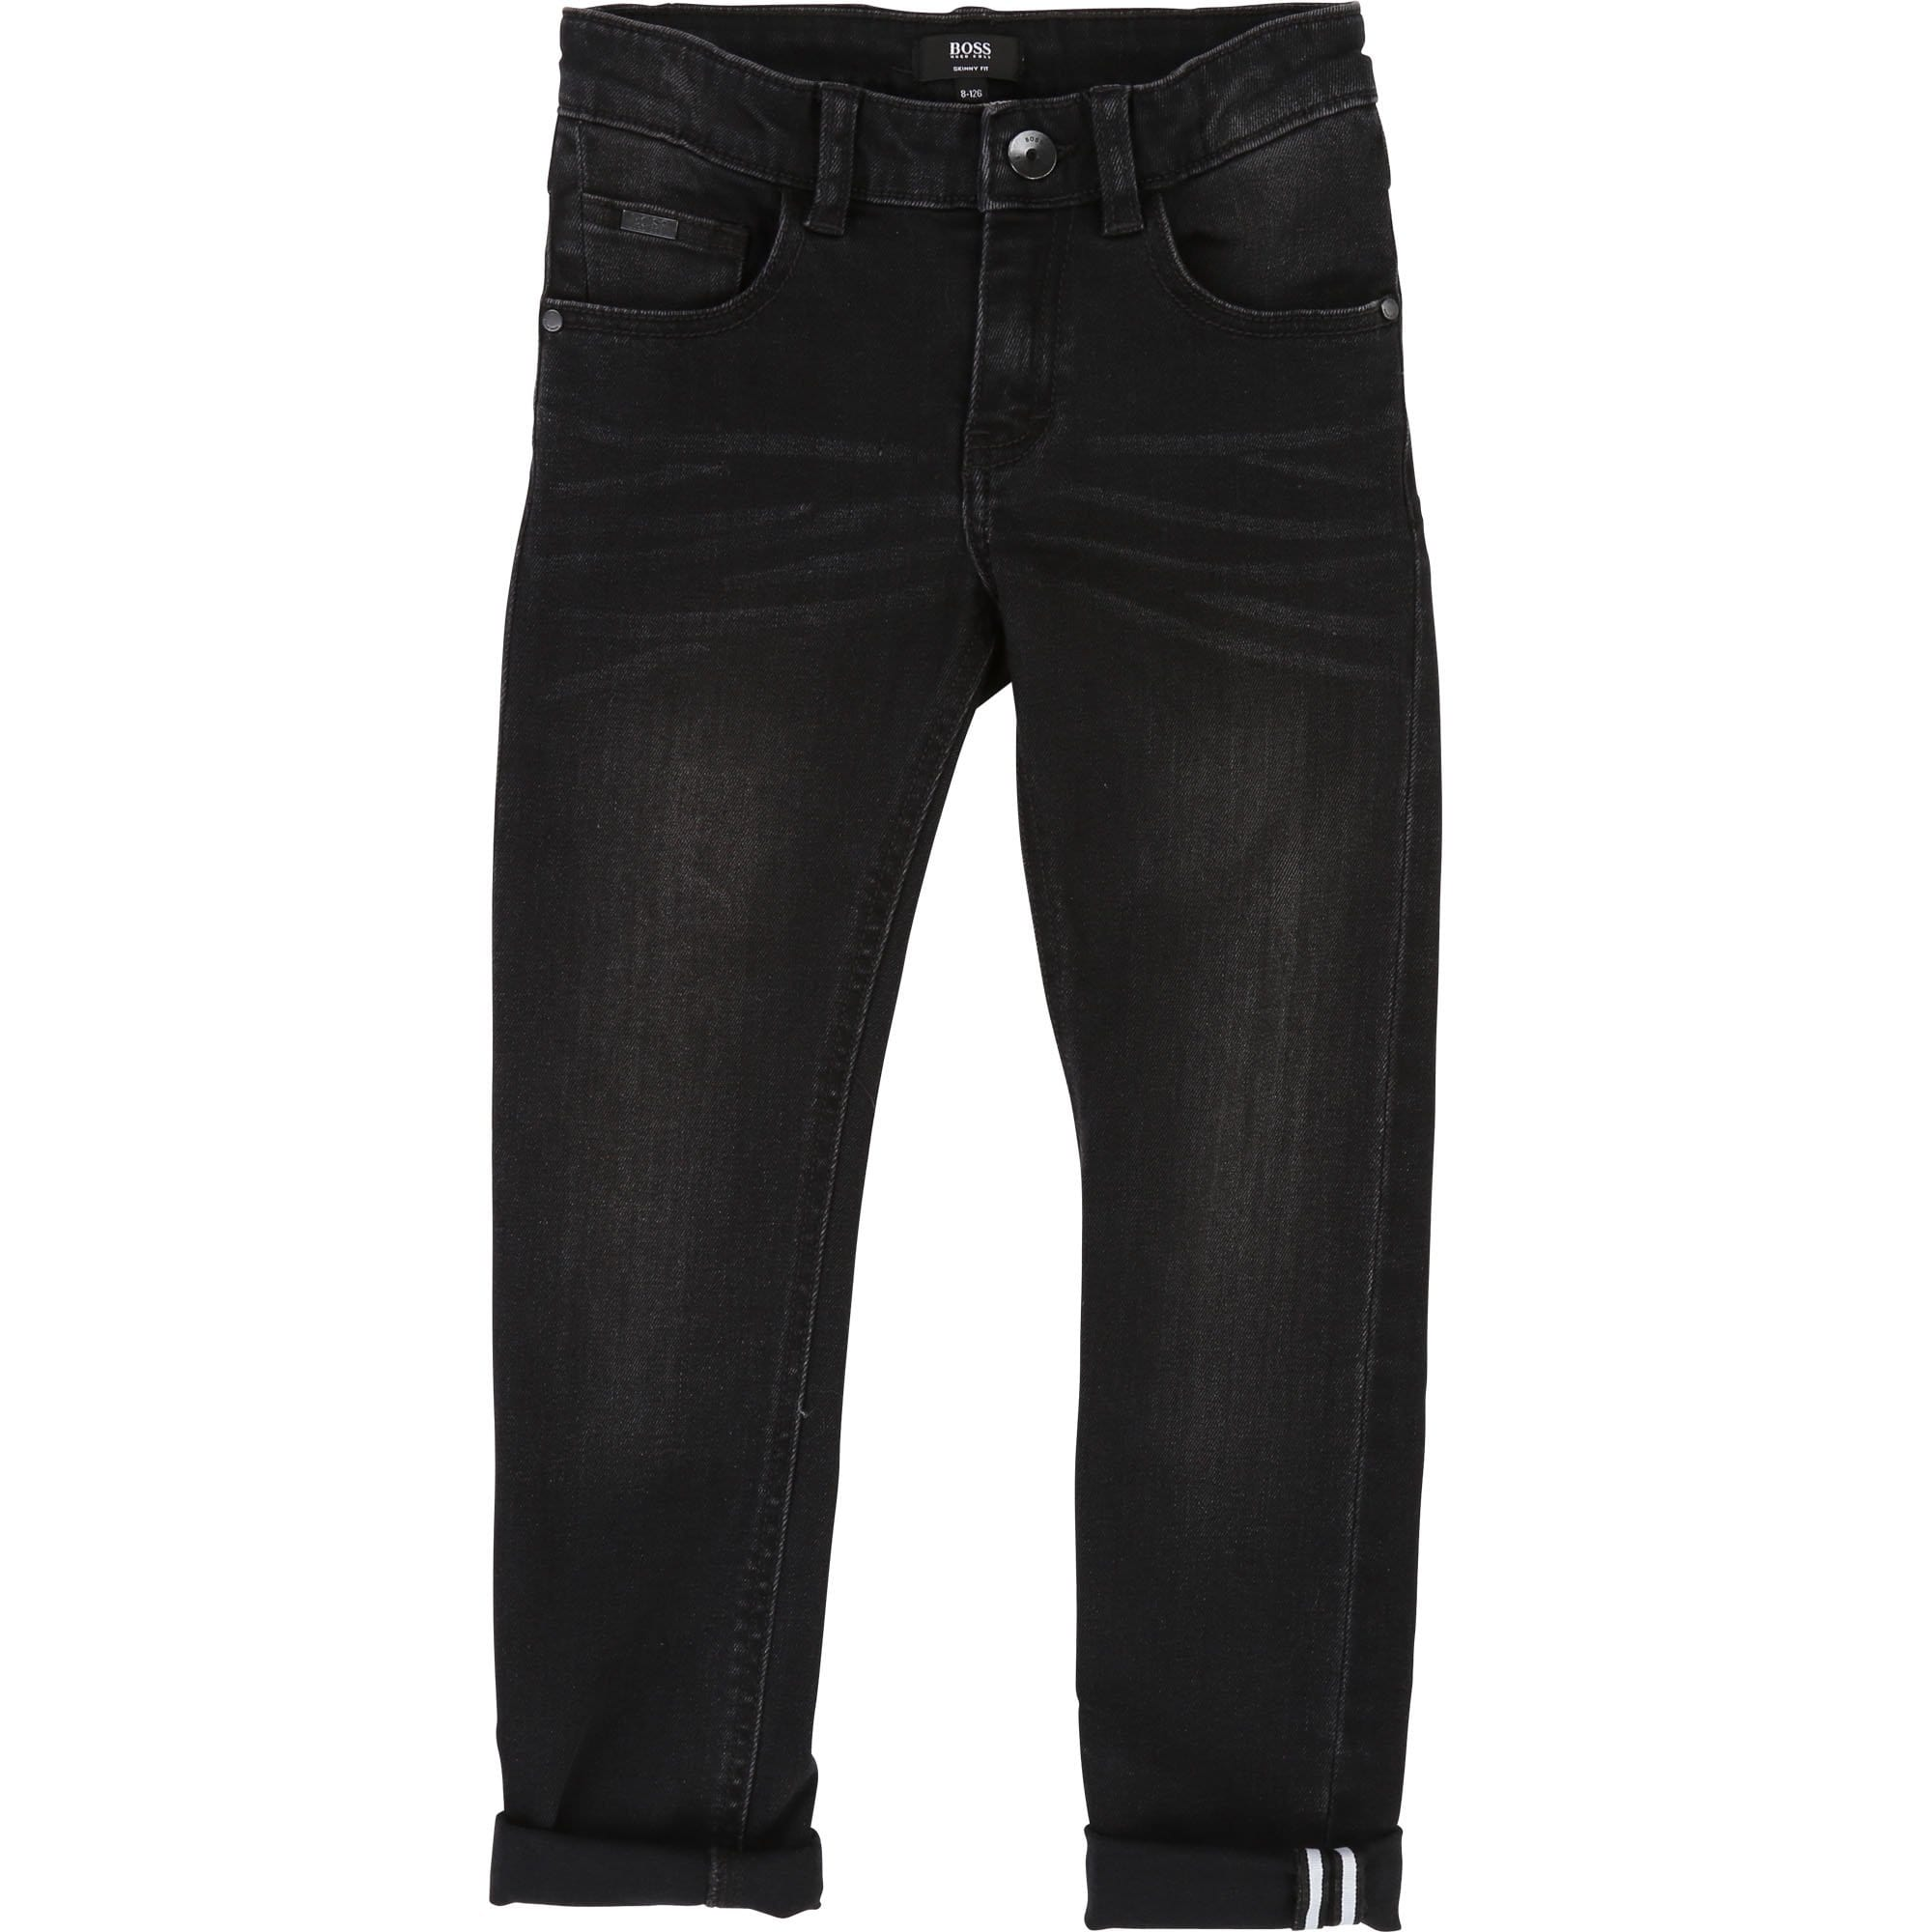 Hugo Boss Denim Jeans Black (4715453055107)